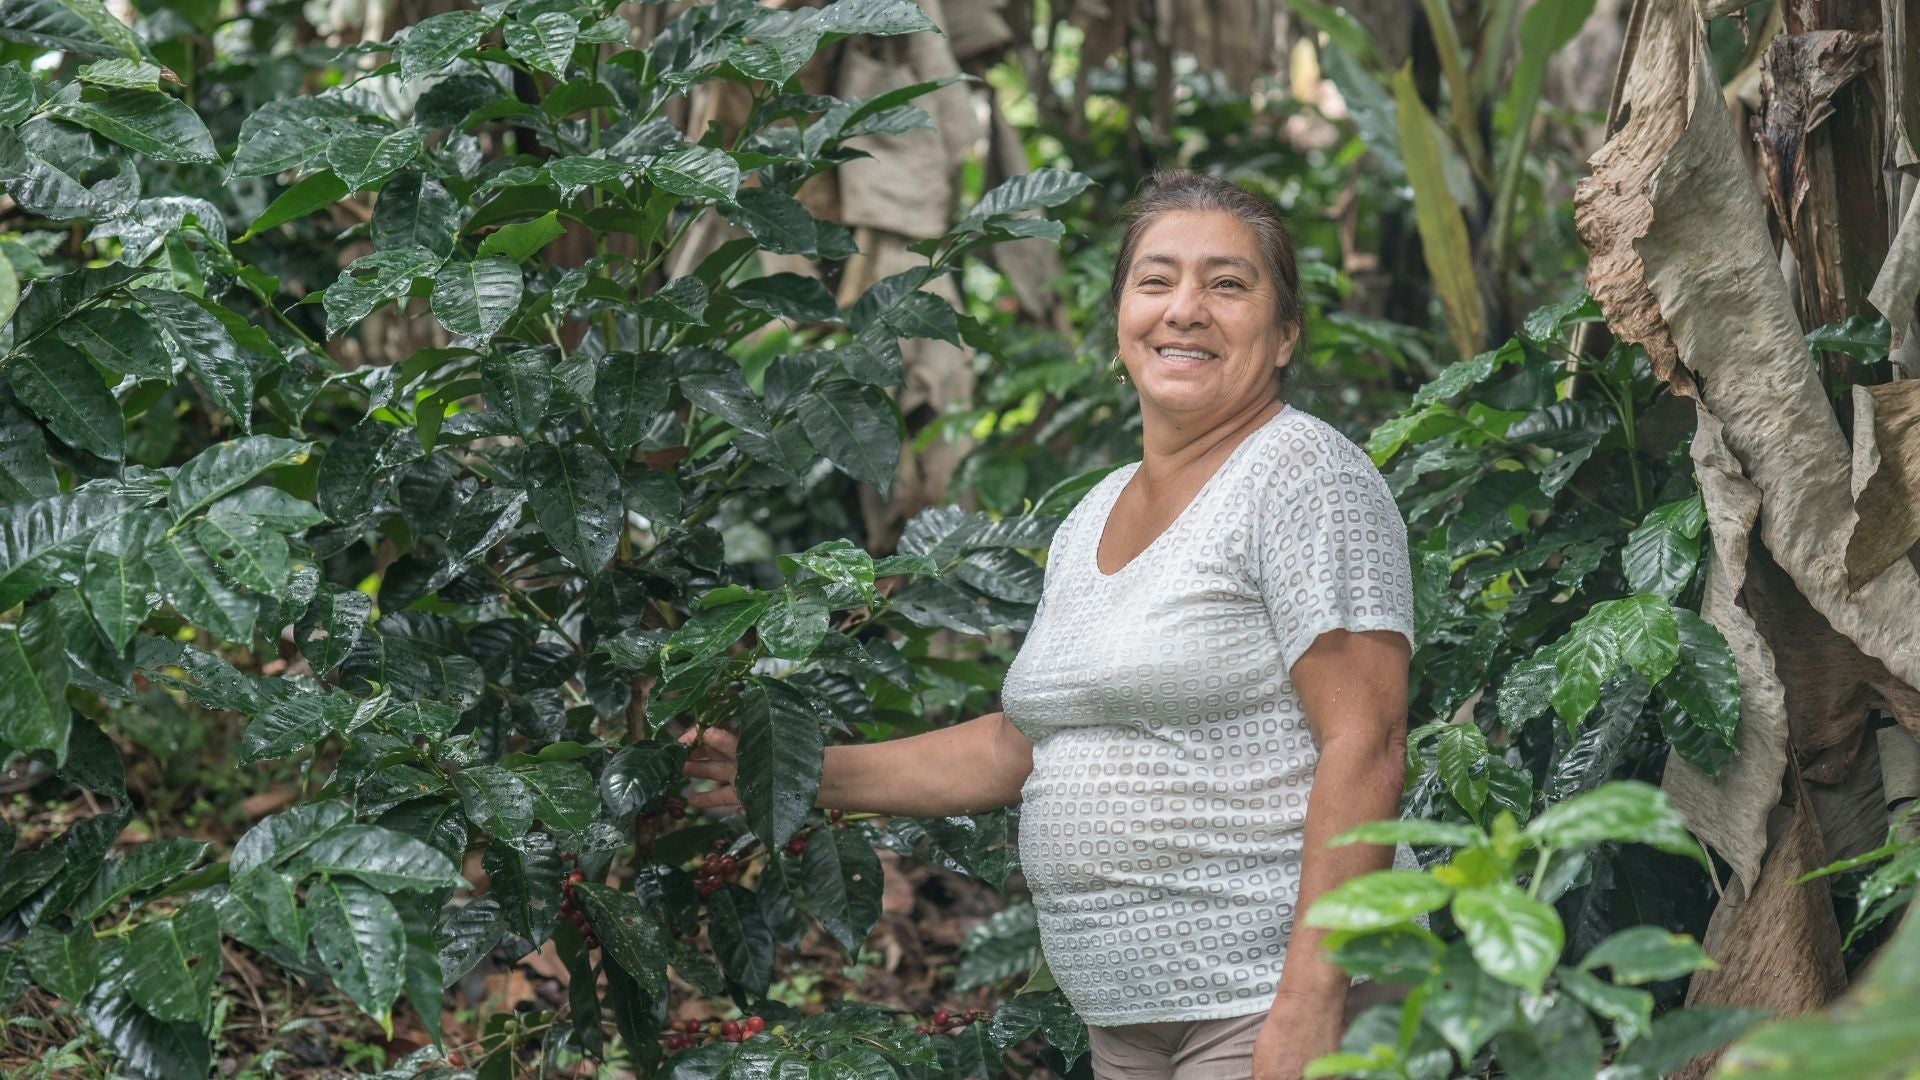 Colombian Café Femenino - Image courtesy of Fair Trade TRANSFAIR USA